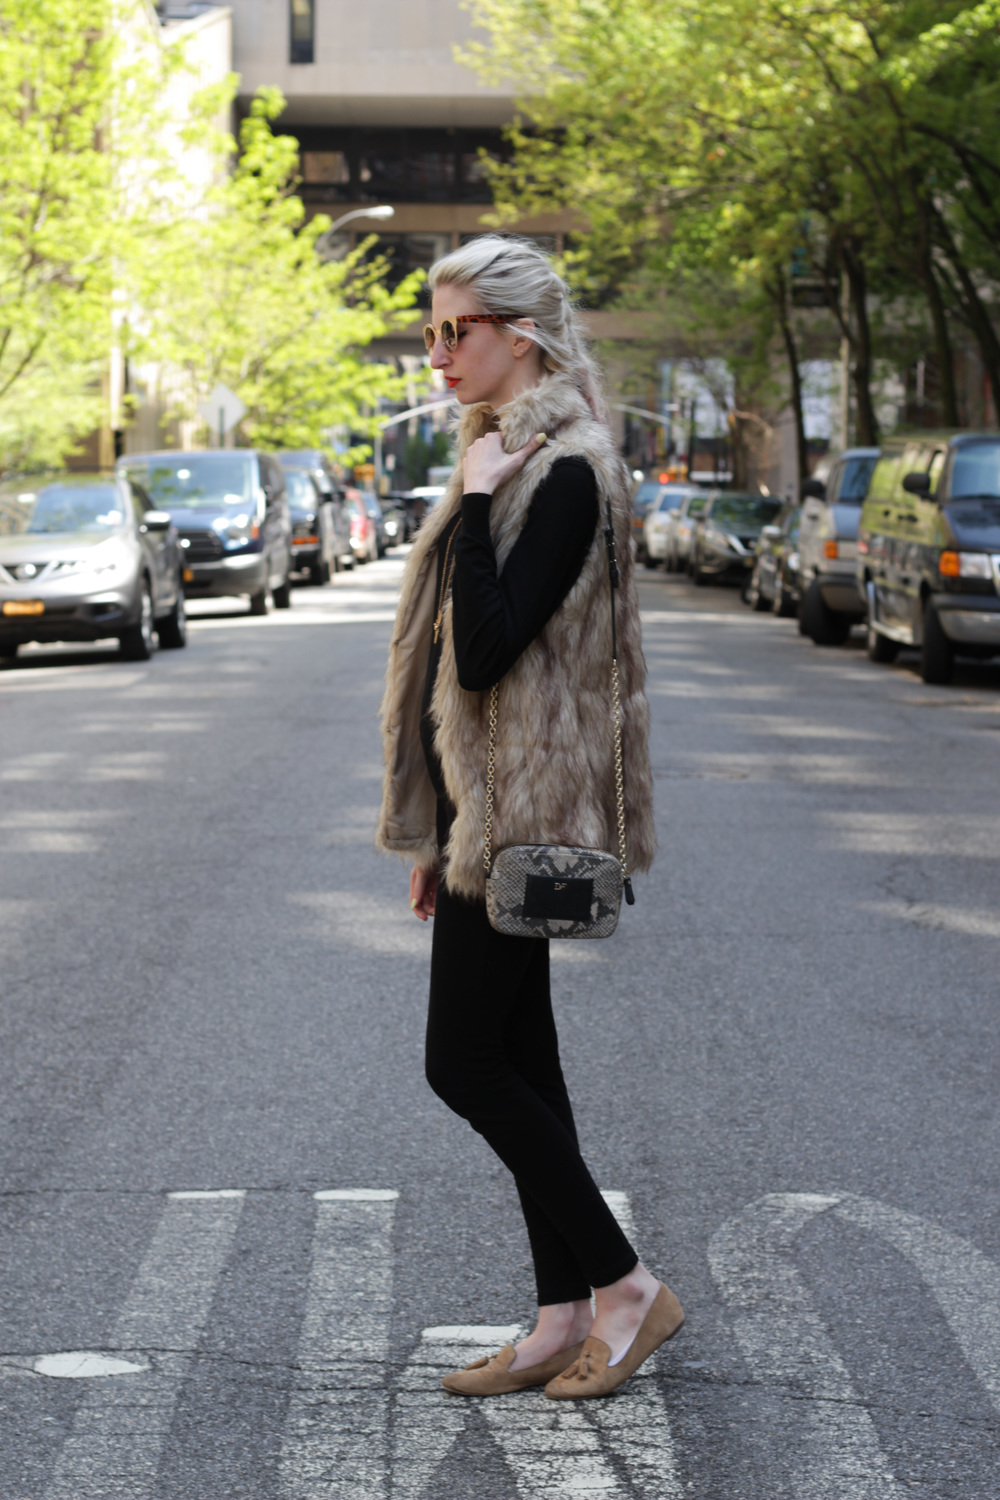 J.Crew snap-front pixie pants, J.Crew crew-neck black sweater, J.Crew Factory Cora tan tassel loafers, brown faux fur vest, diane von furstenberg micro milo crossbody bag, kat von d a-go-go orange lipstick, cat eye and tortoiseshell sunglasses